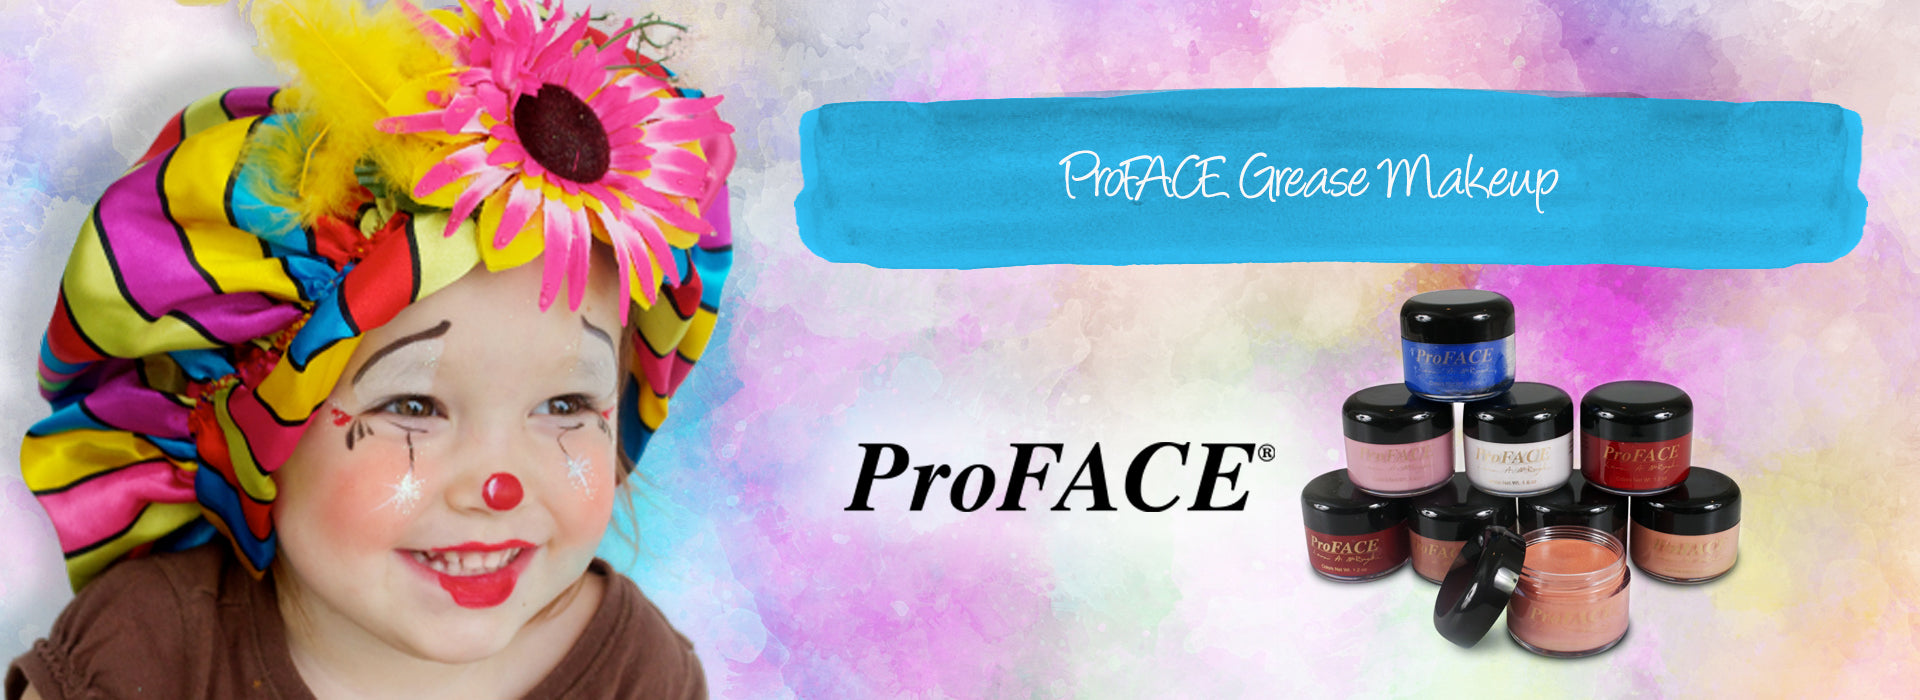 ProFACE Grease Makeup